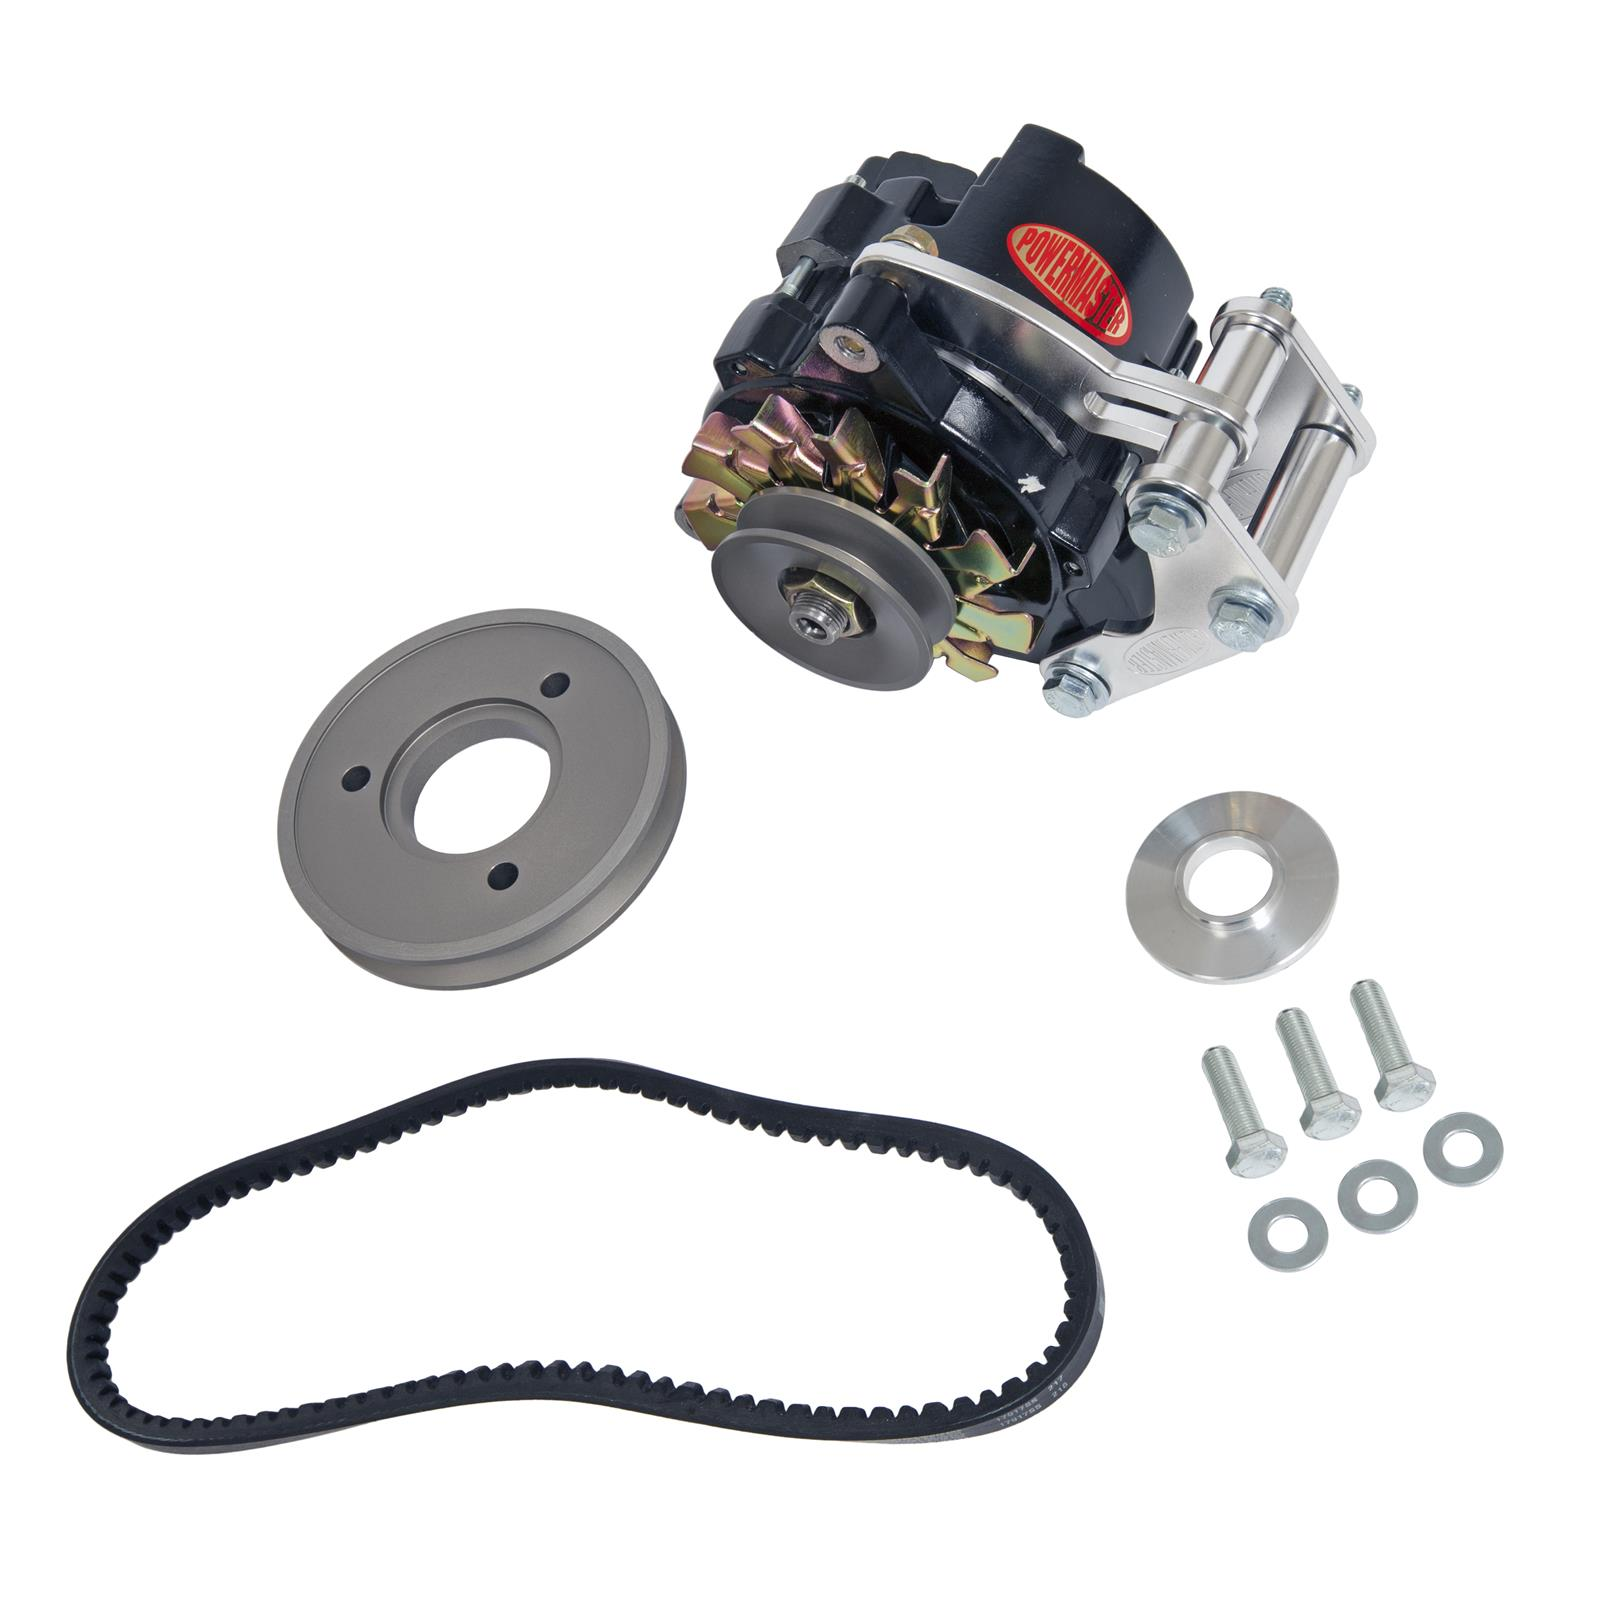 Powermaster Drag Race Alternator Kits 8 881 Free Shipping On Manuals Toyota Nippondenso 196374 Regulator Electrical Orders Over 99 At Summit Racing